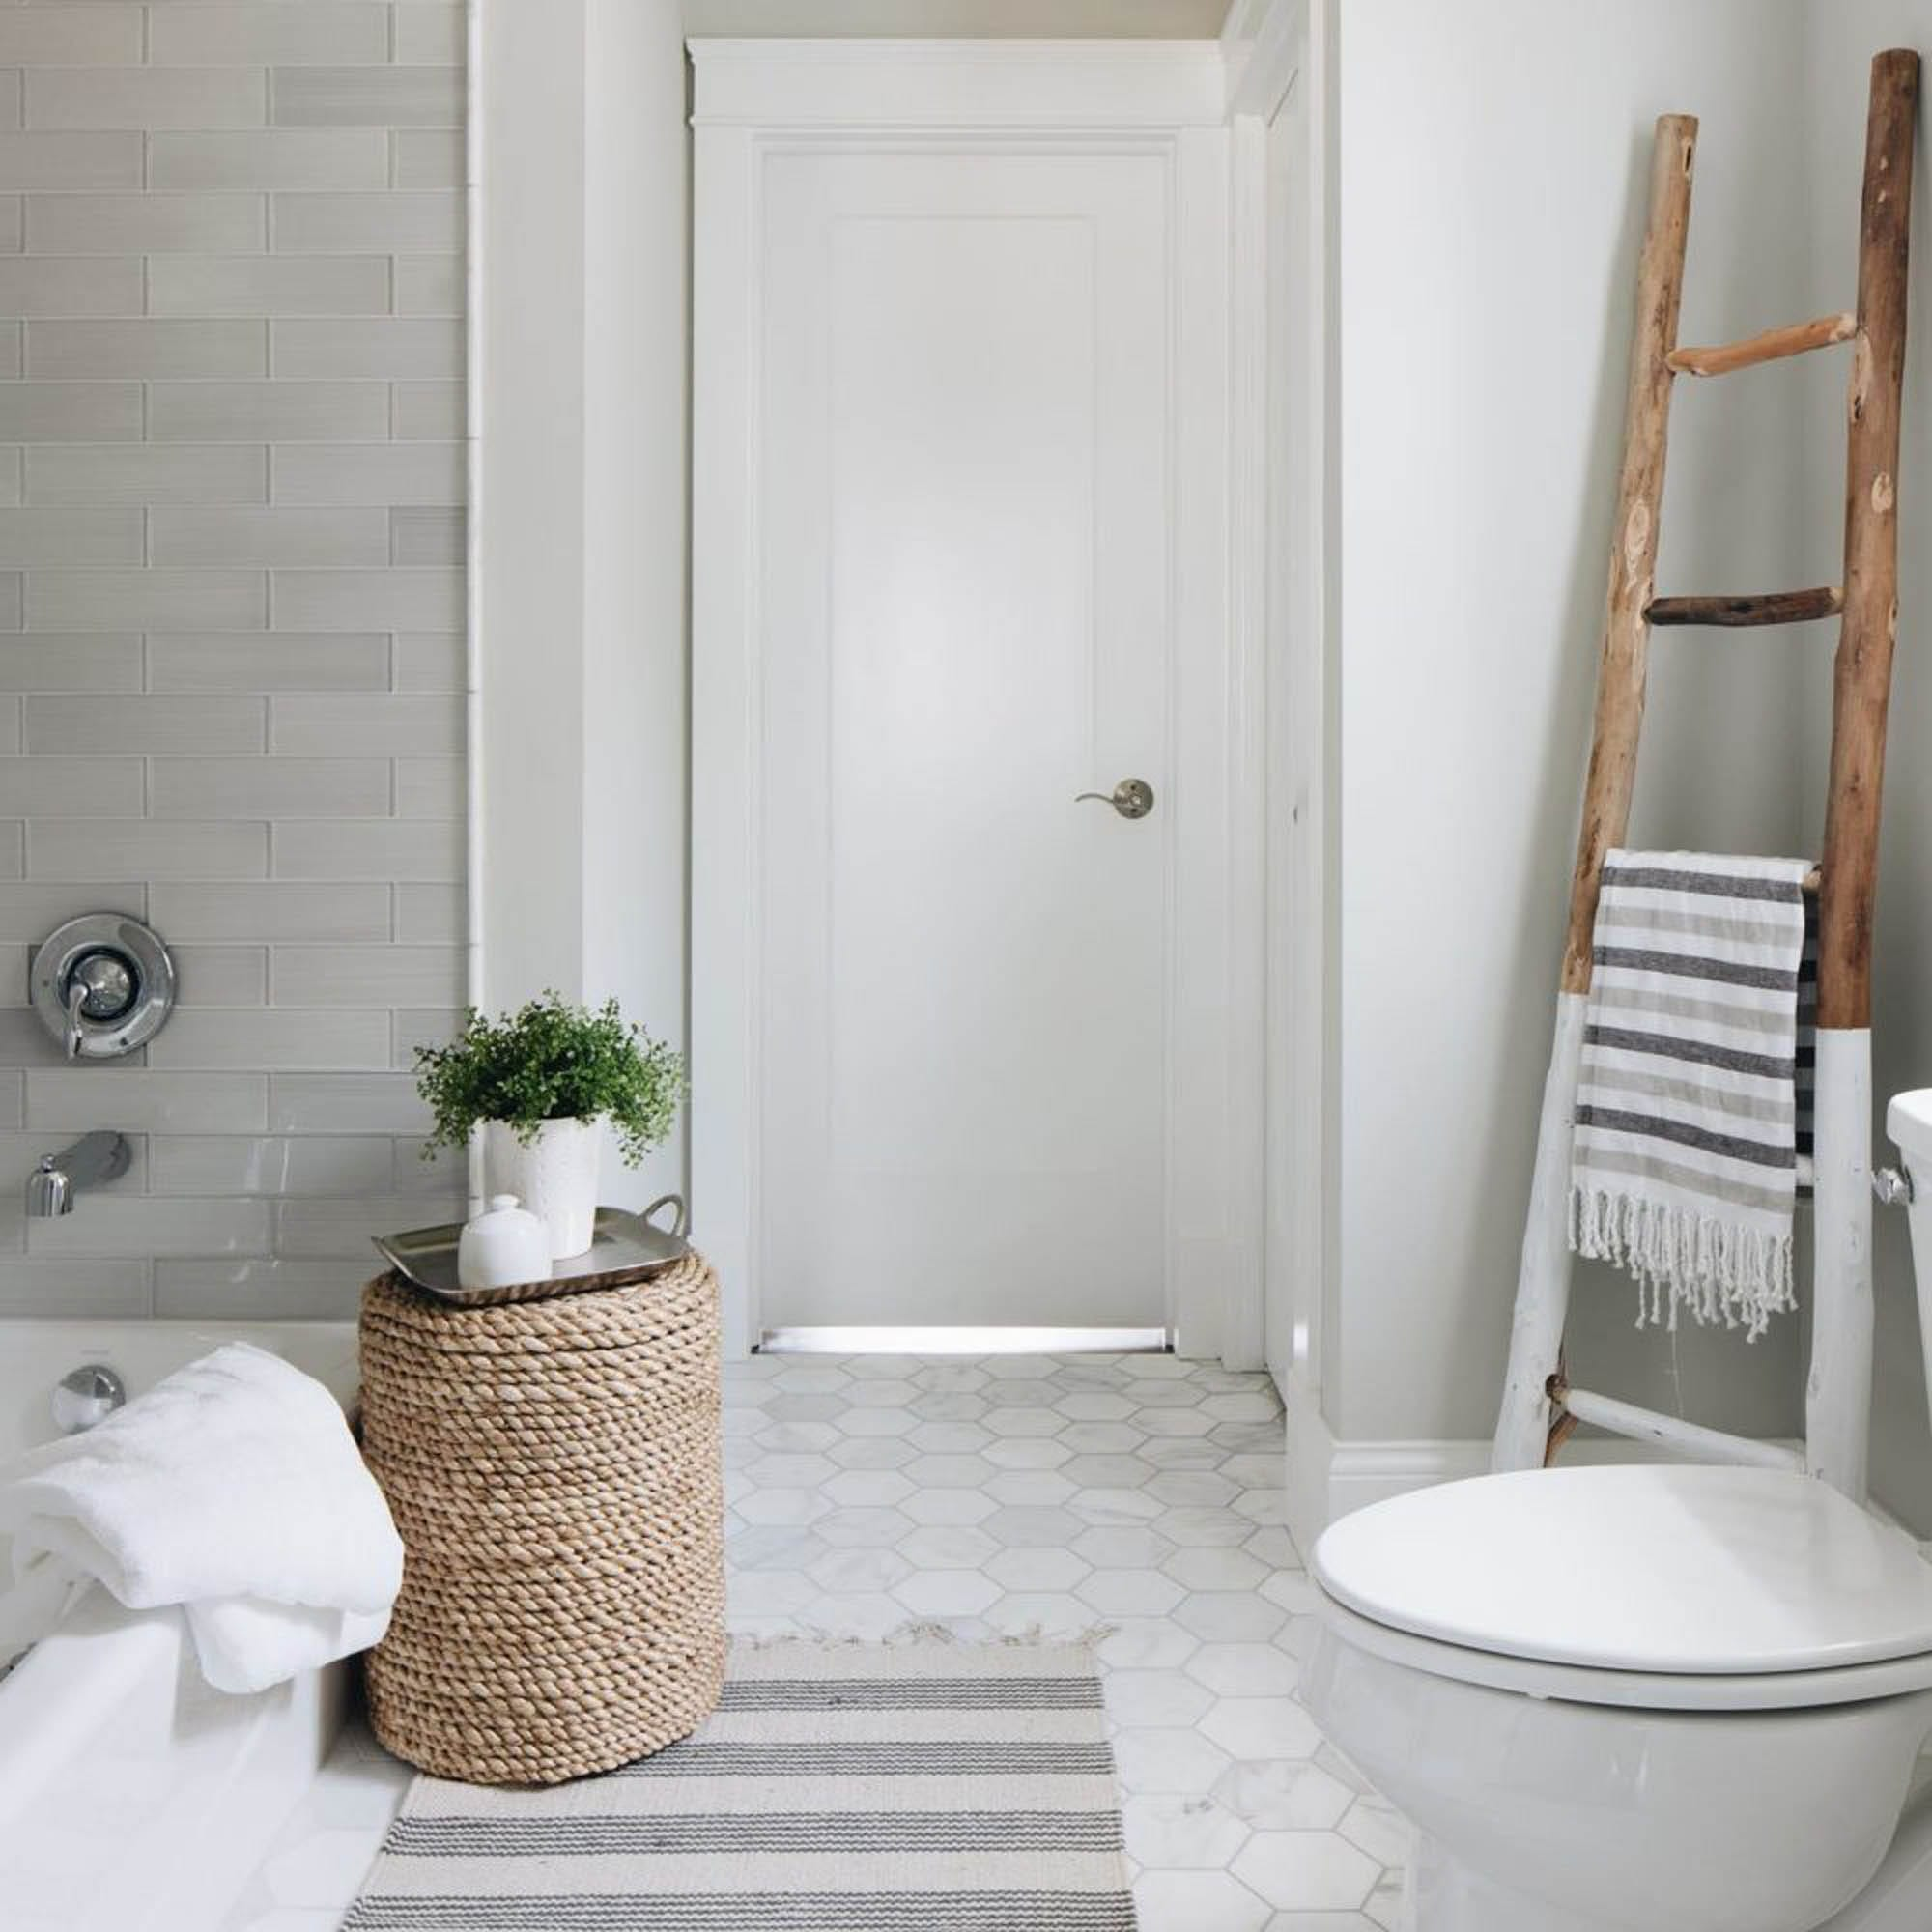 Light grey bathroom tile